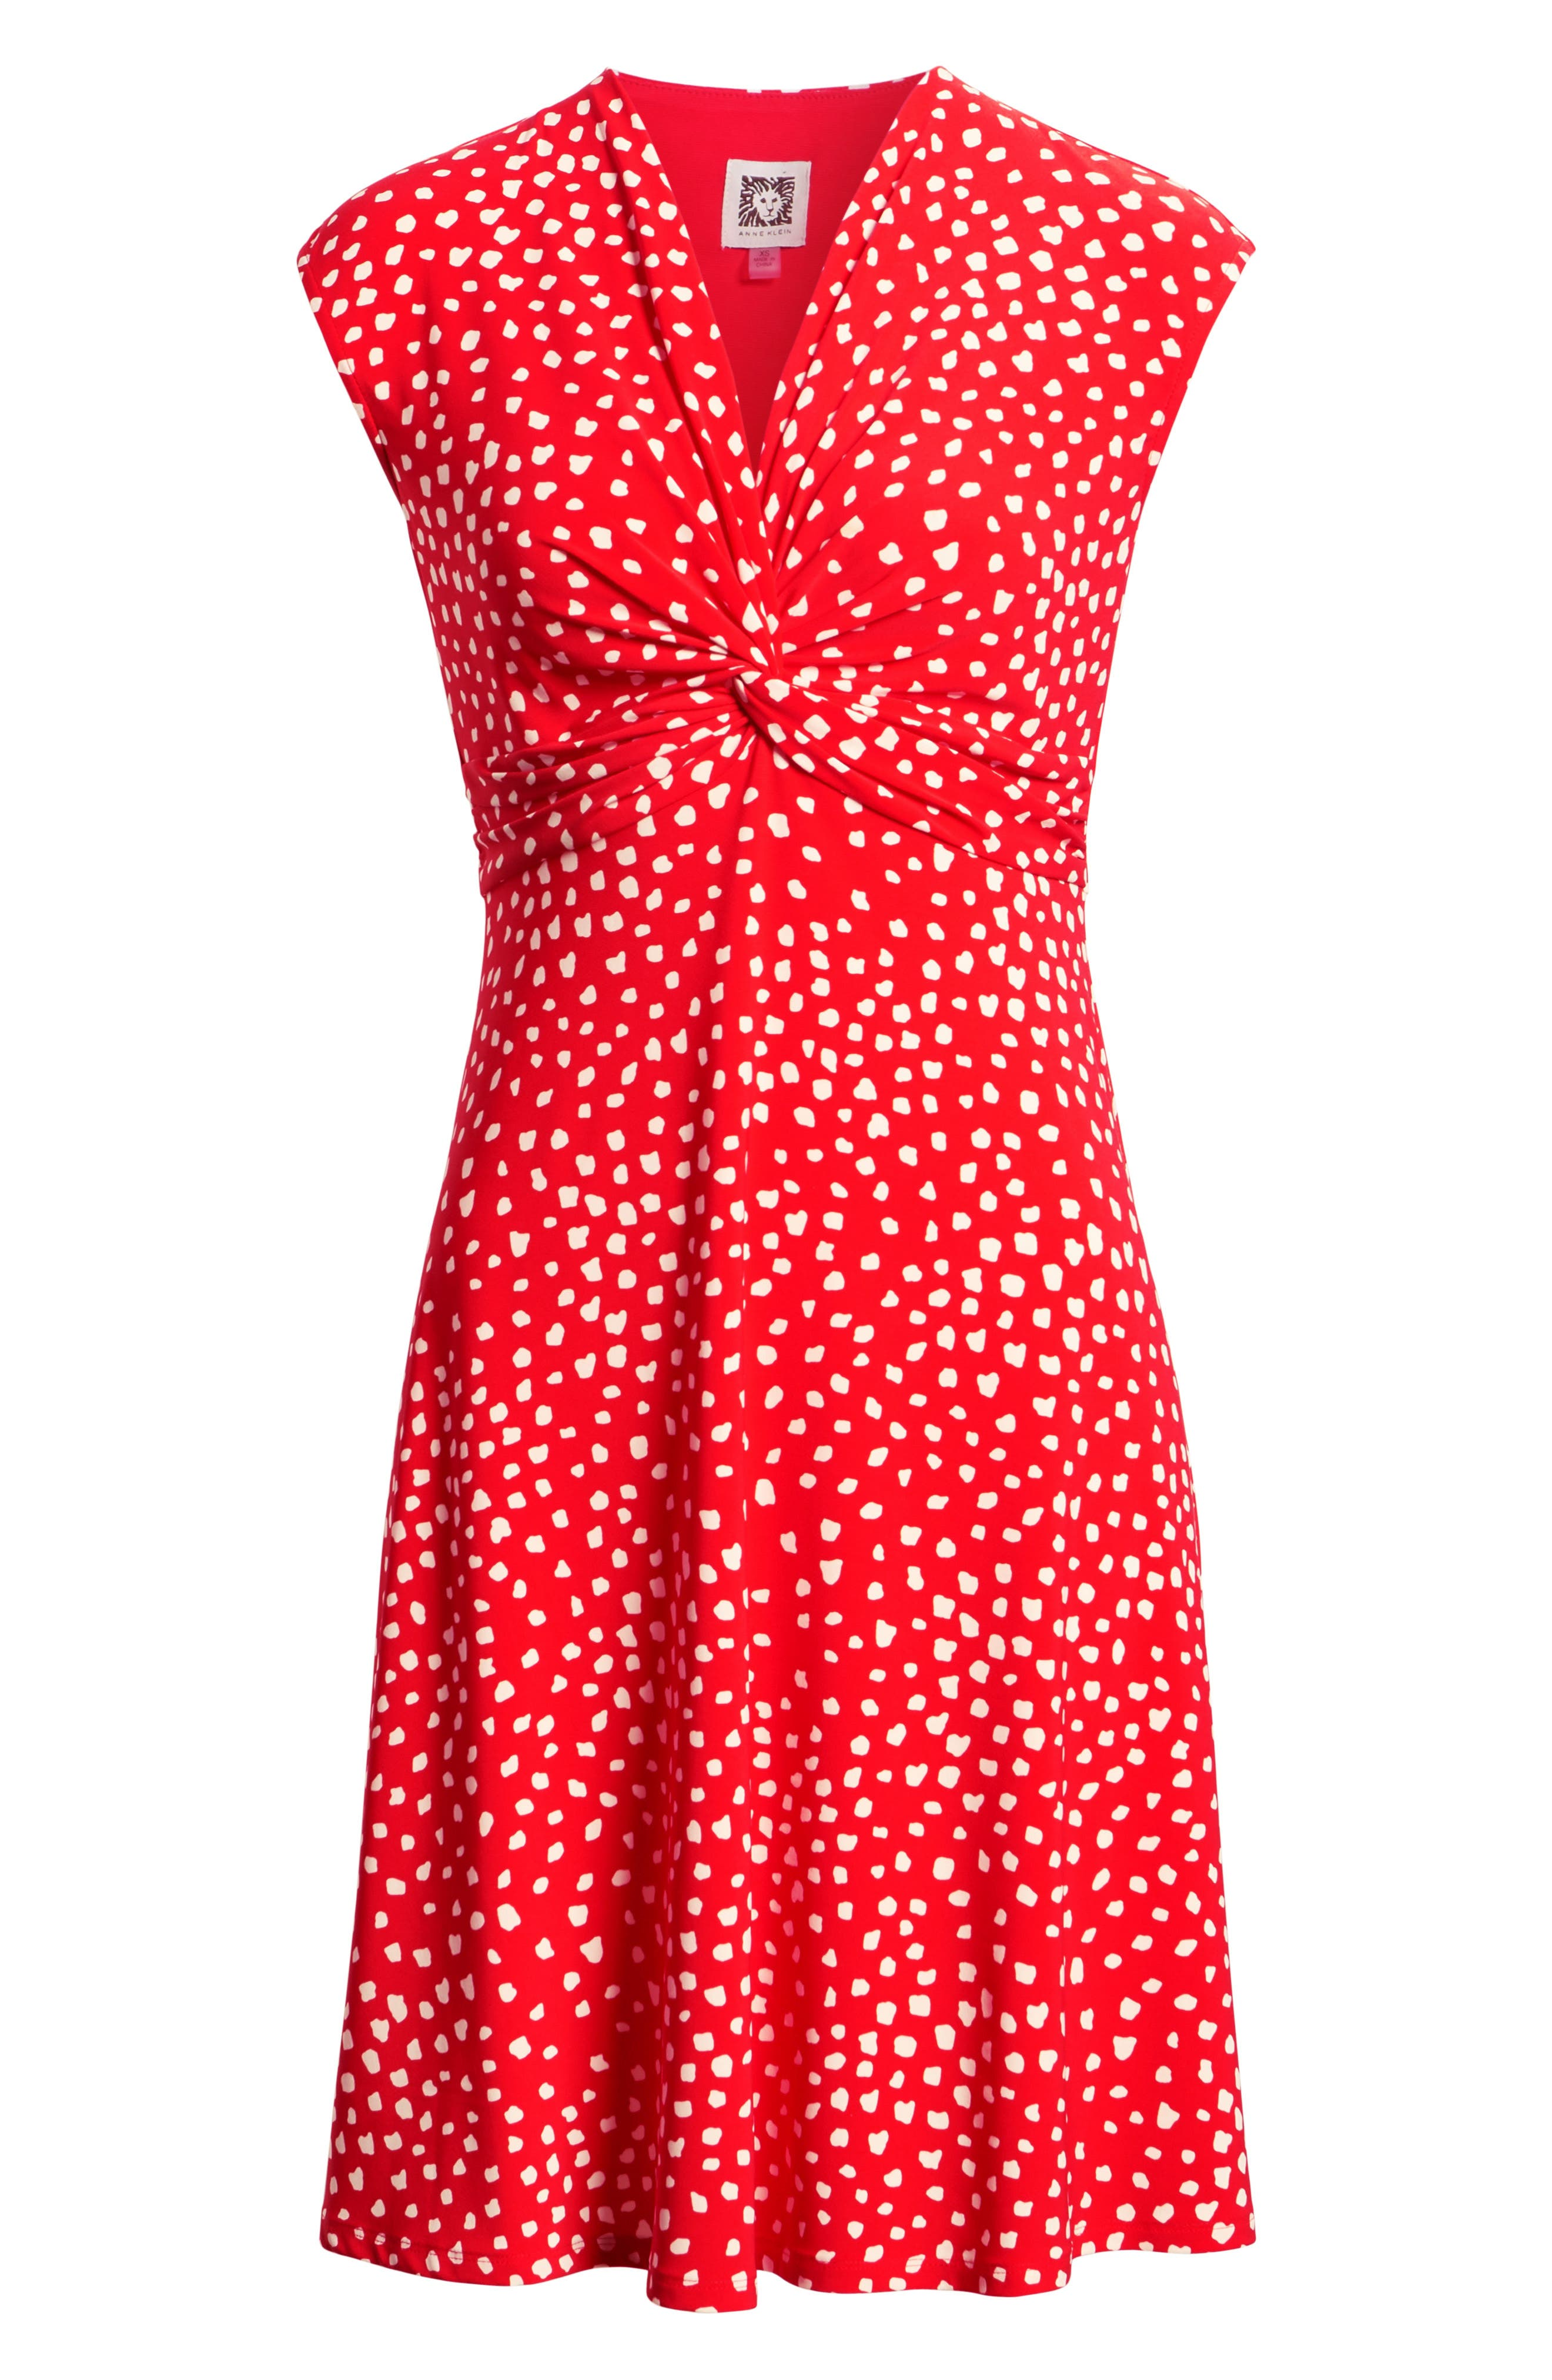 Ceylon Twist Fit and Flare Dress,                             Alternate thumbnail 8, color,                             600